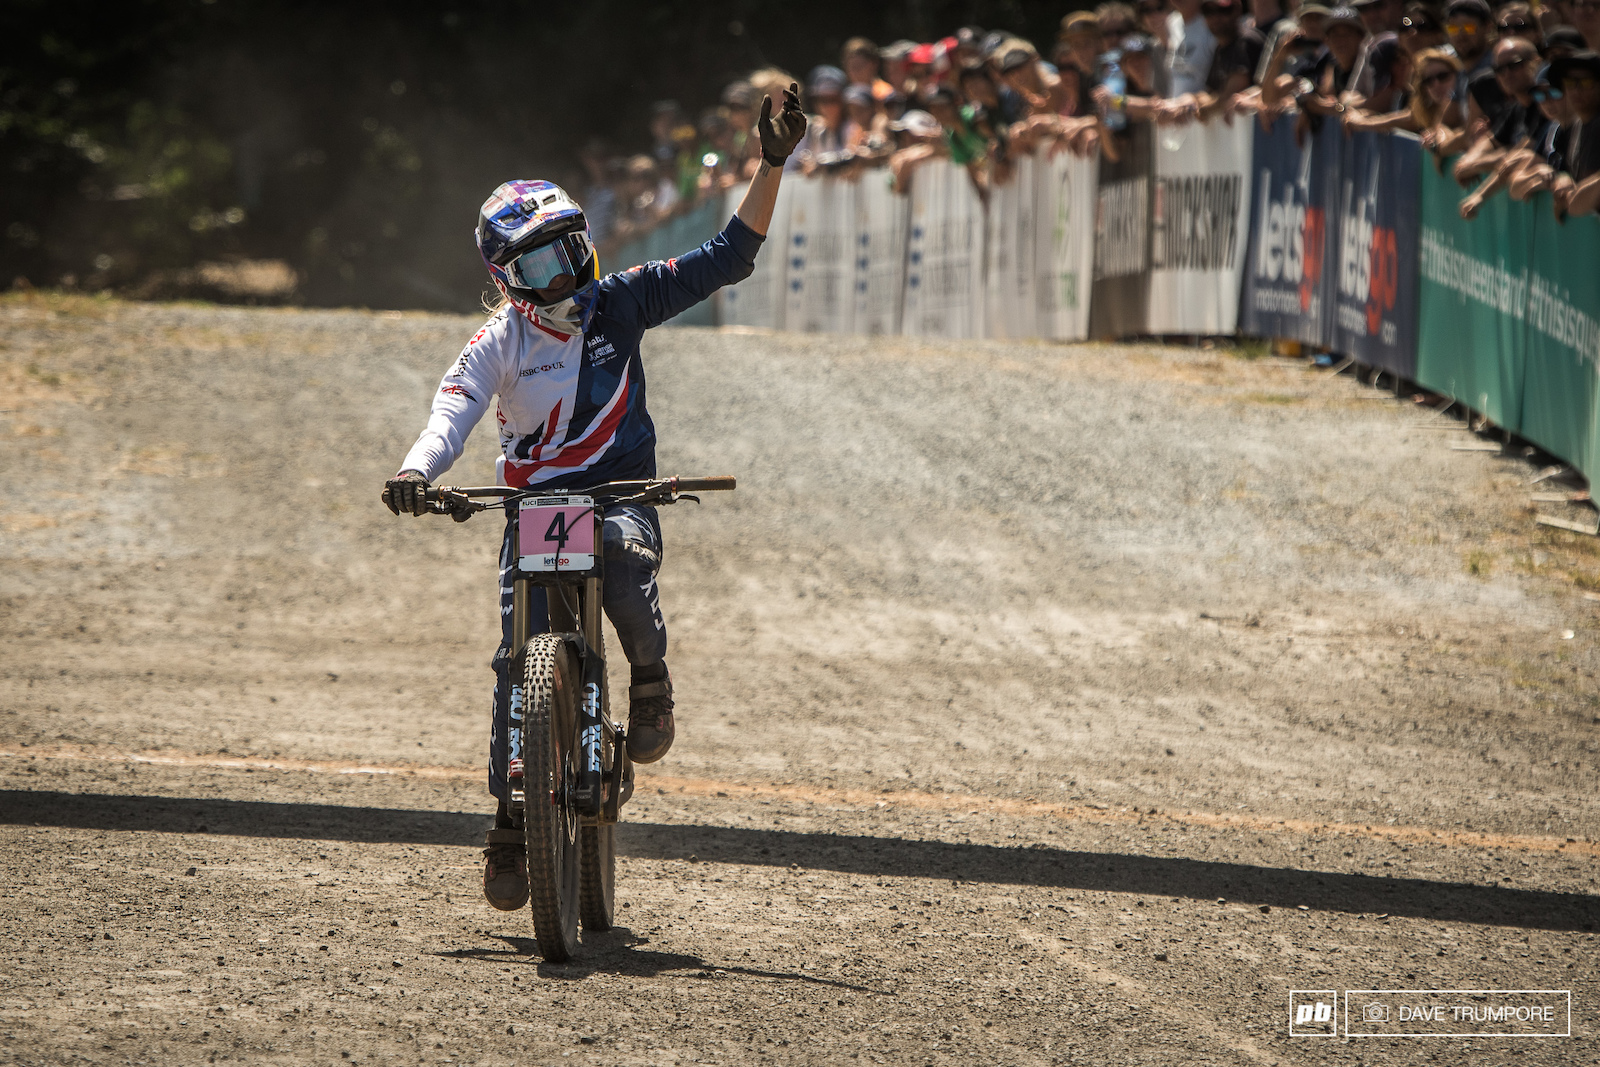 Tahnee Seagraves dream season comes to a close with a disappointing world champs run. But she goes into the off season healthy and with more confidence than ever.